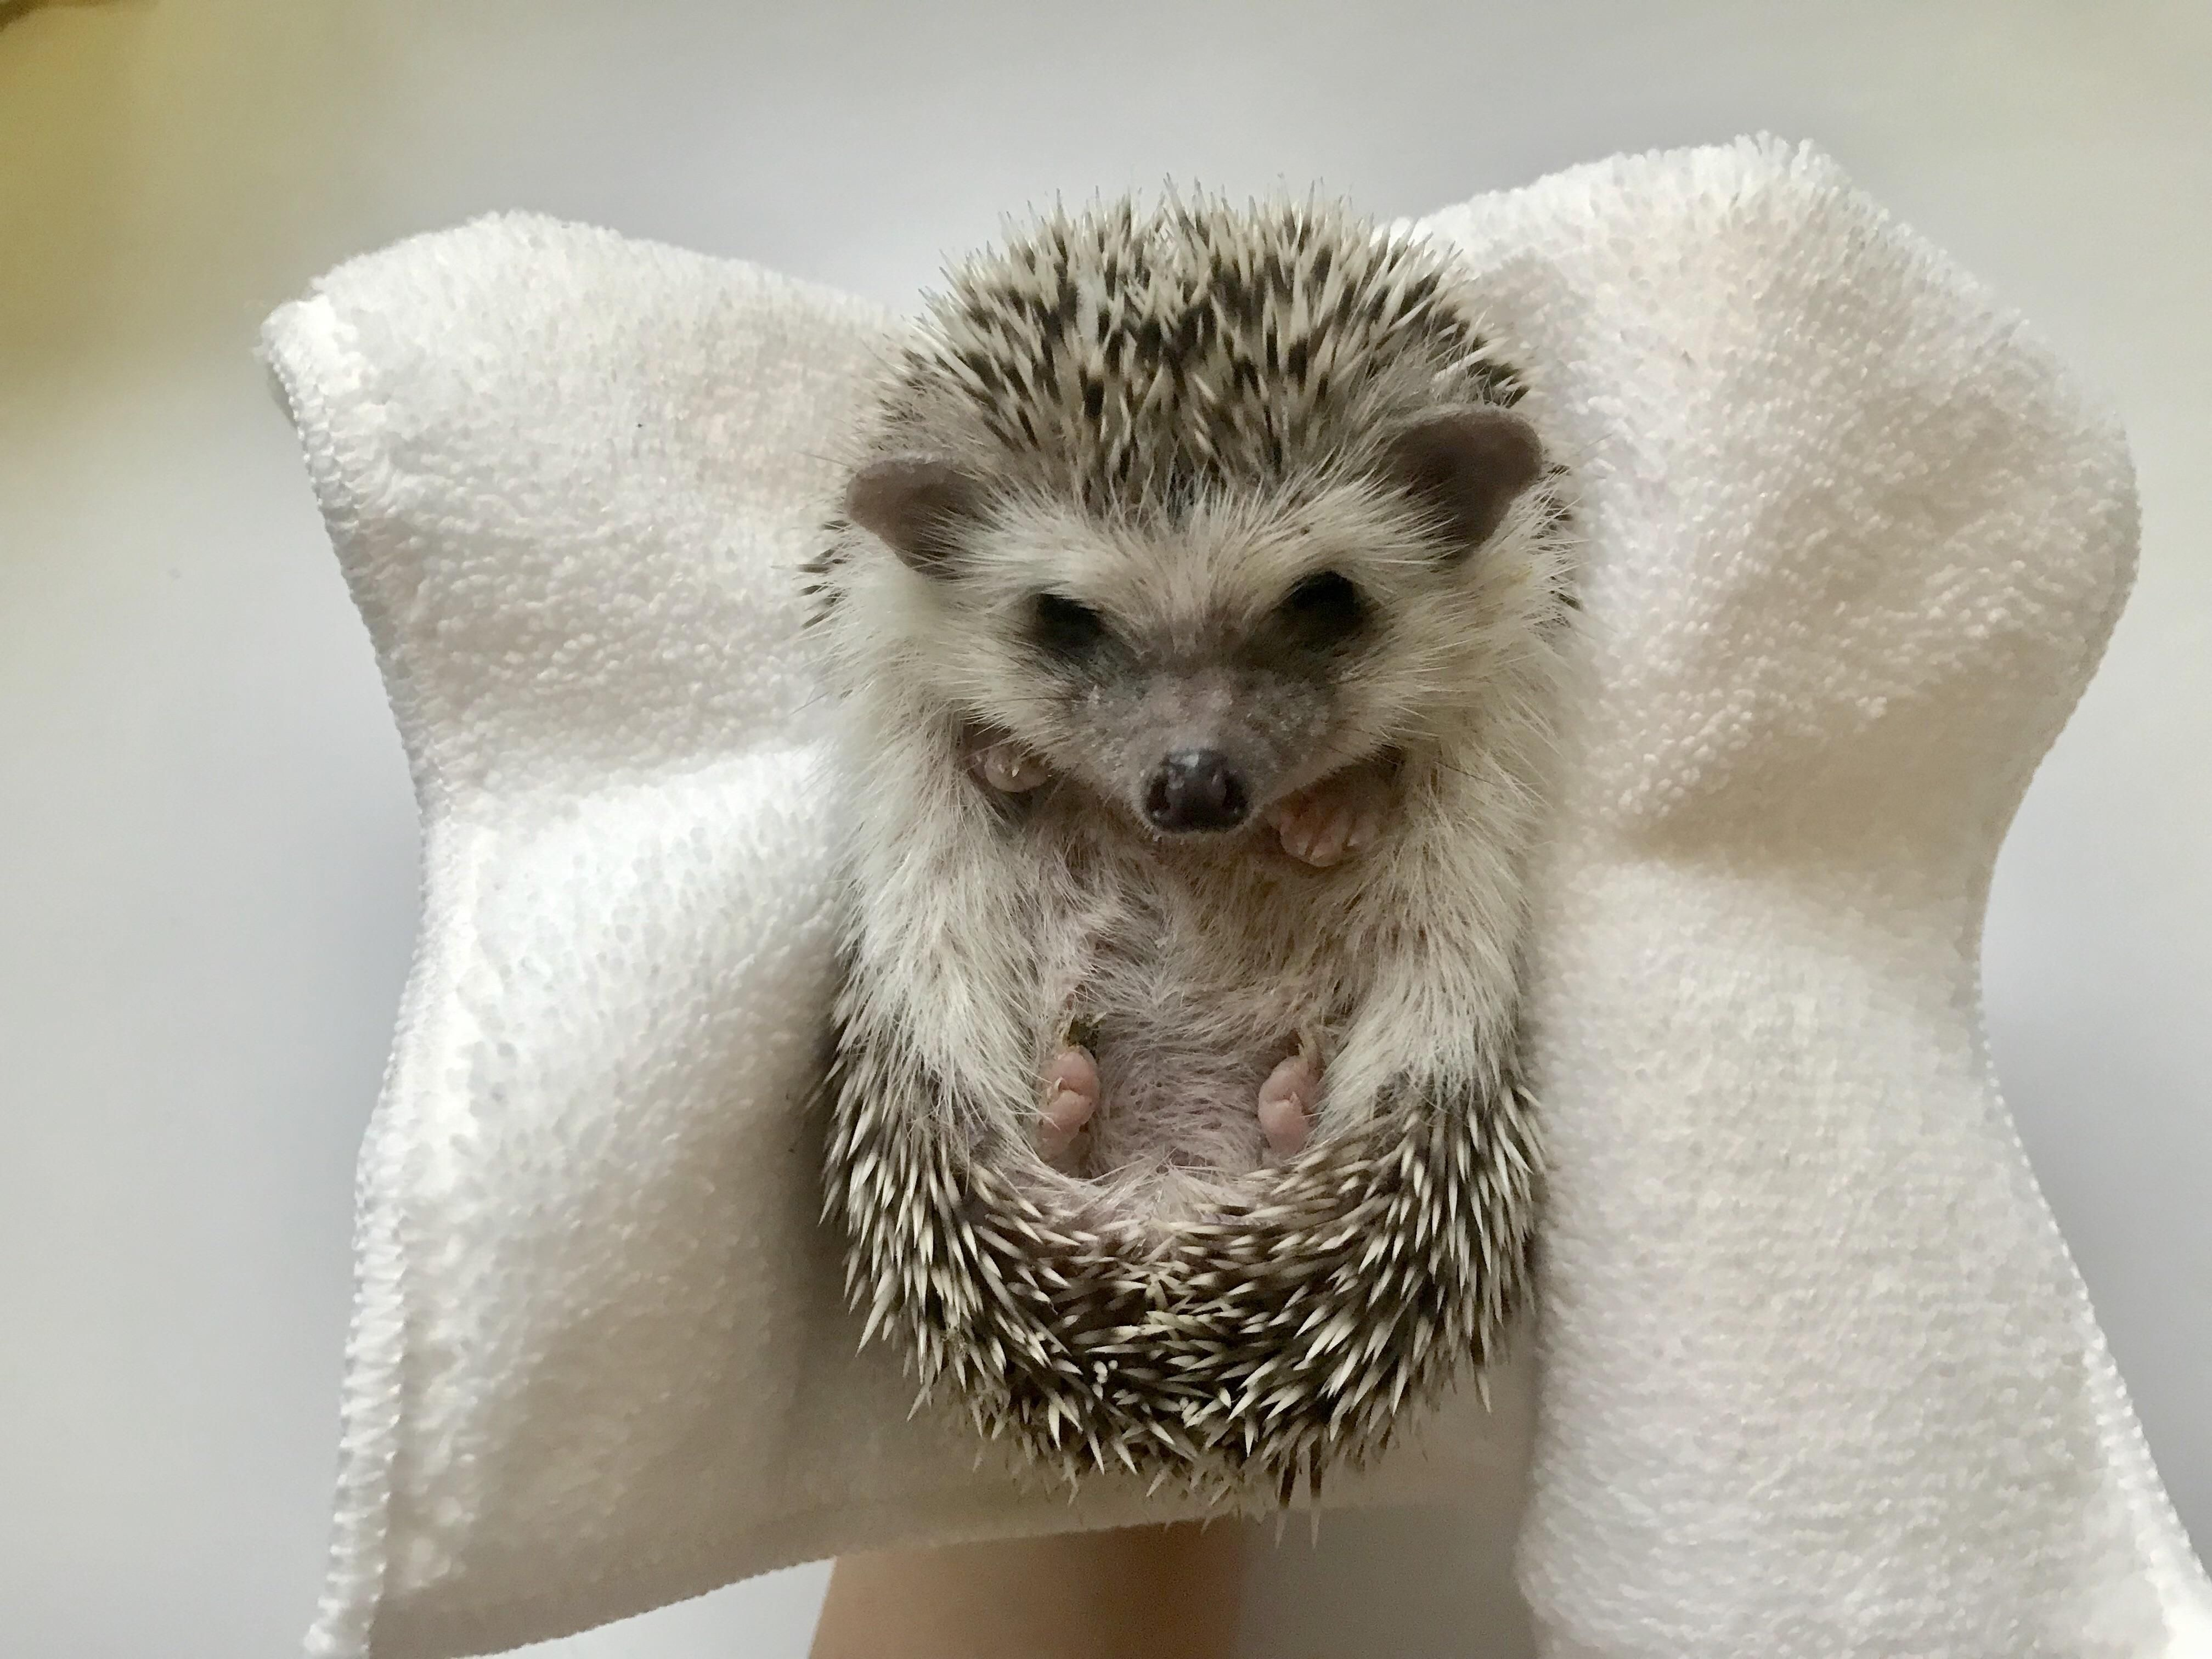 How to befriend the little one my hedgehog is super shy